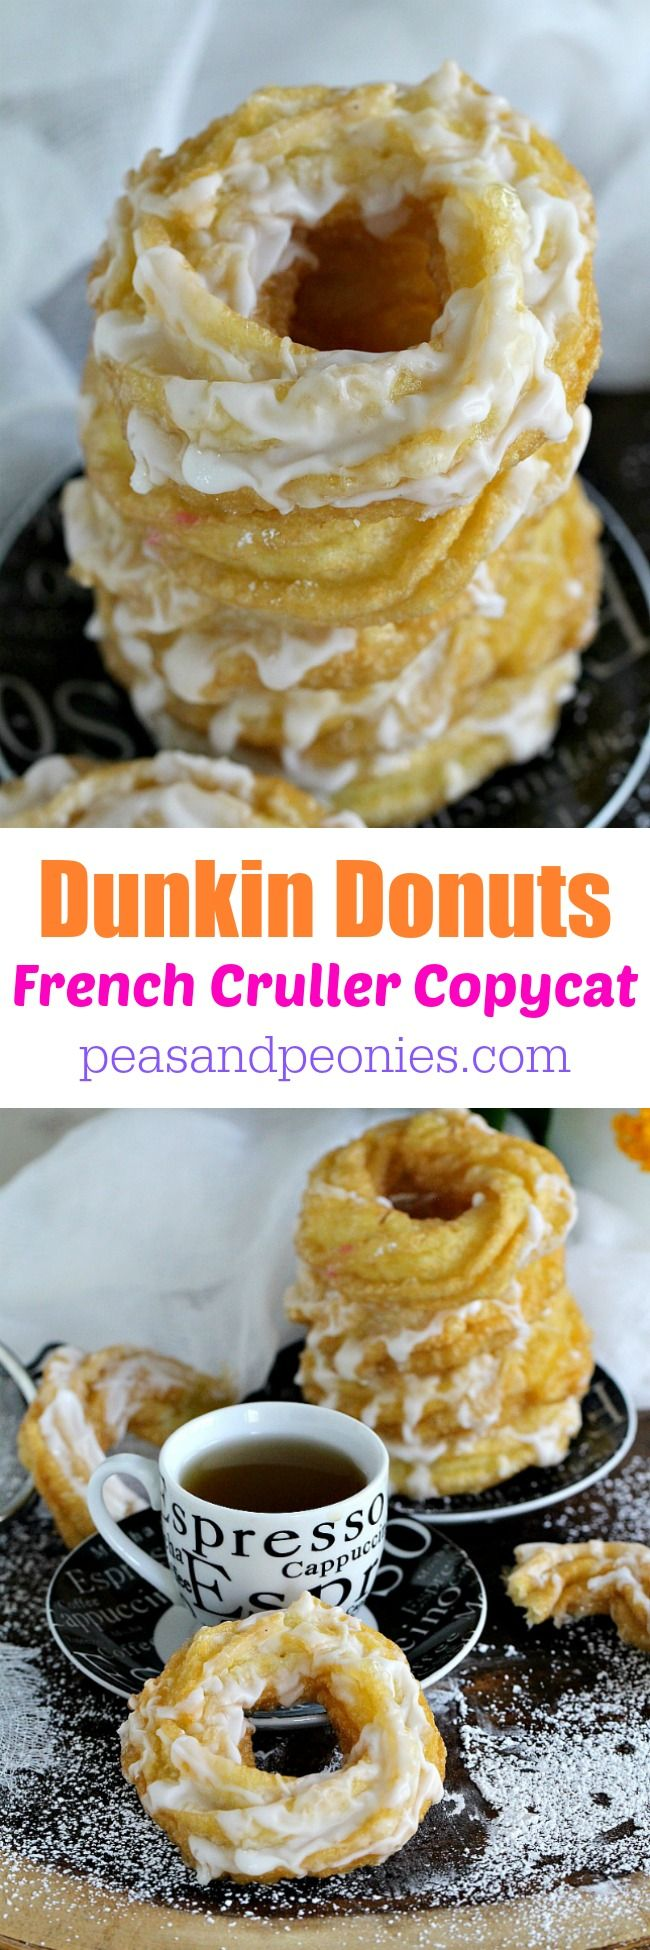 The Dunkin Donuts French Cruller Donut Copycat made in the comfort of your home with just a few ingredients is yeast free and will be ready in under 30 minutes. Peas and Peonies